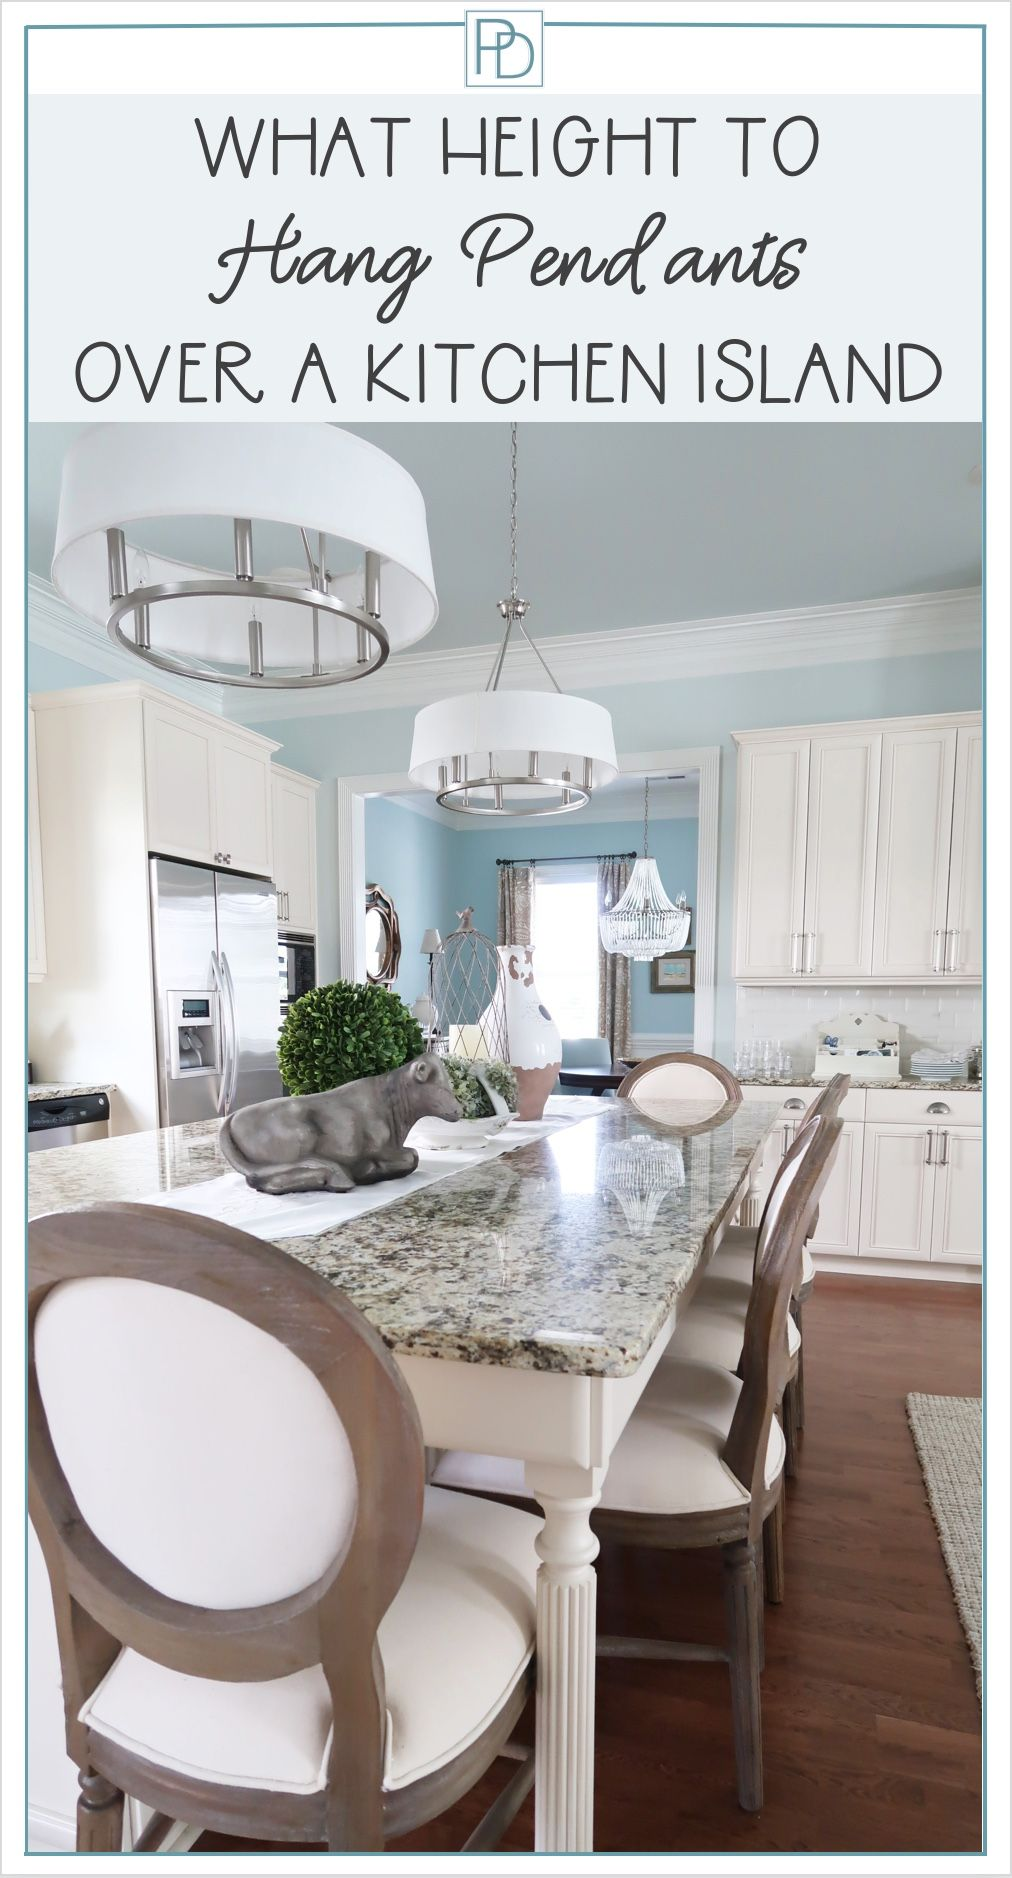 A quick and inexpensive update over your kitchen island is new light ...